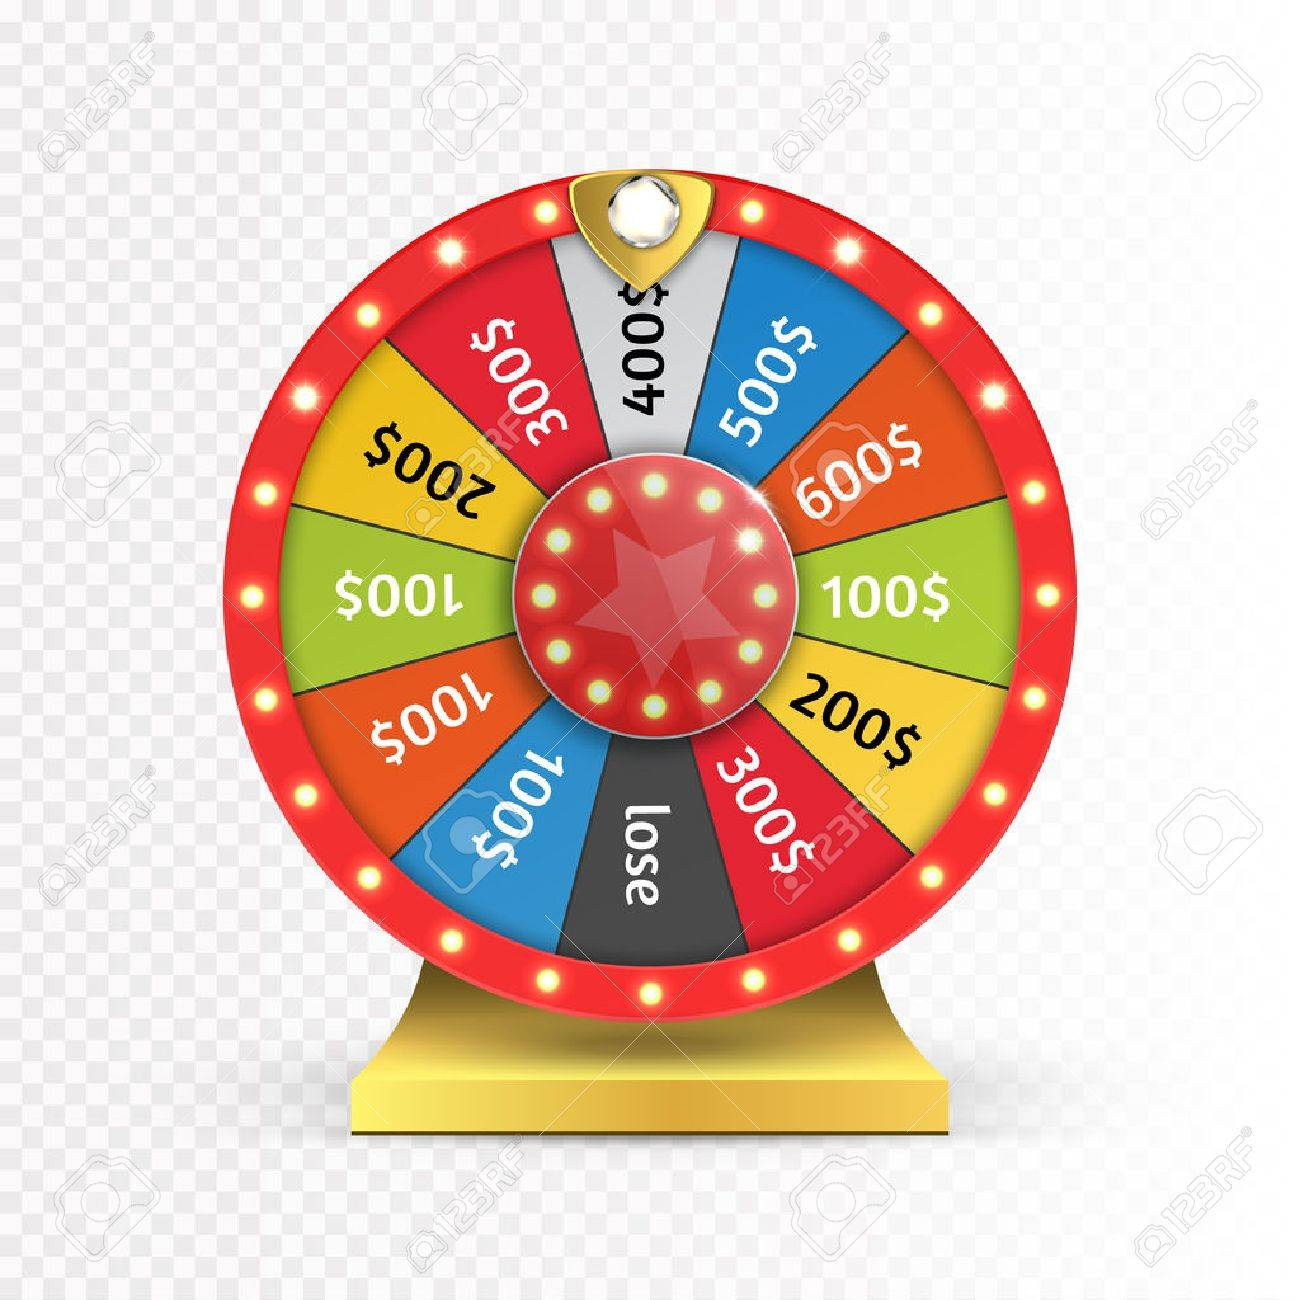 Colorful wheel of luck or fortune infographic. Vector - 70776305